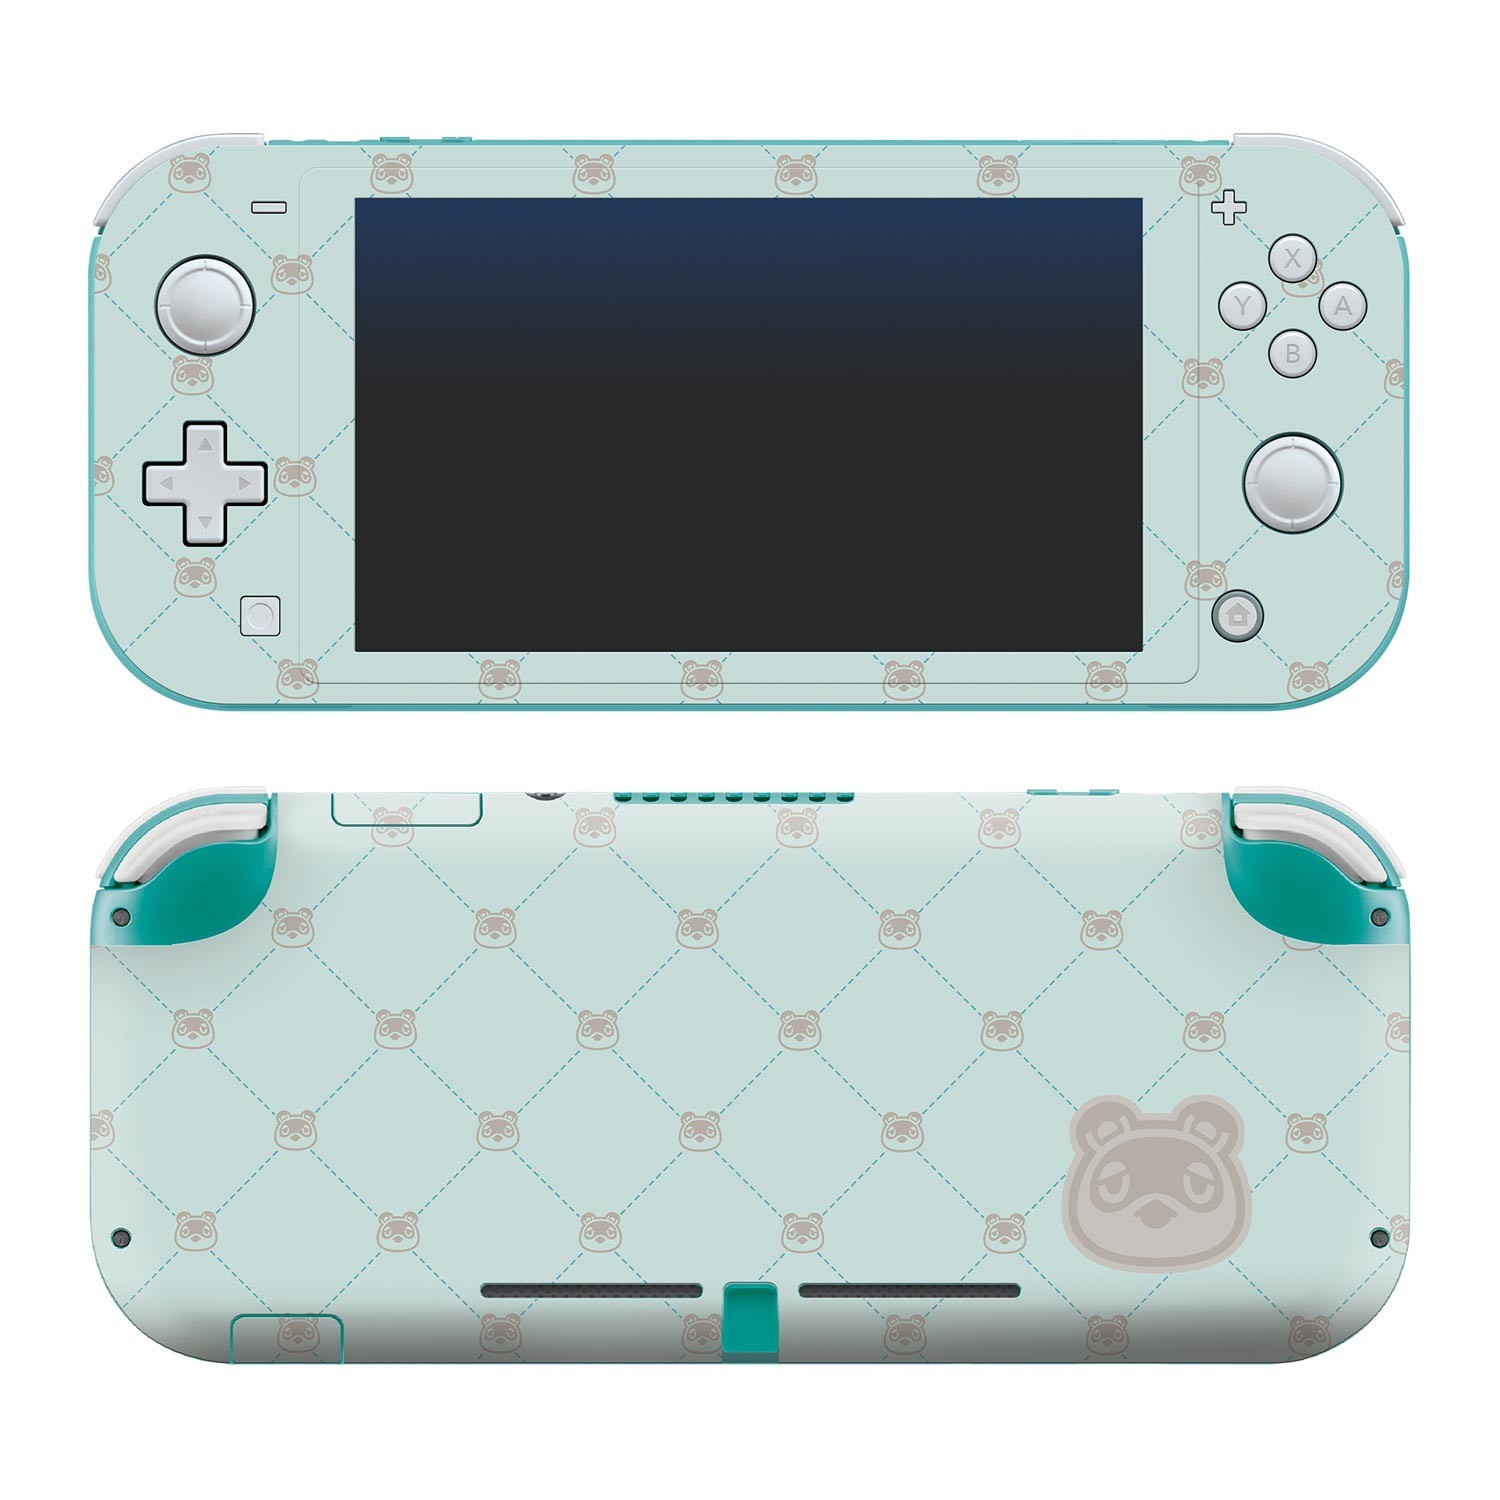 Animal Crossing: New Horizons - Tom Nook Quilted - Nintendo Switch Lite Skin image 1